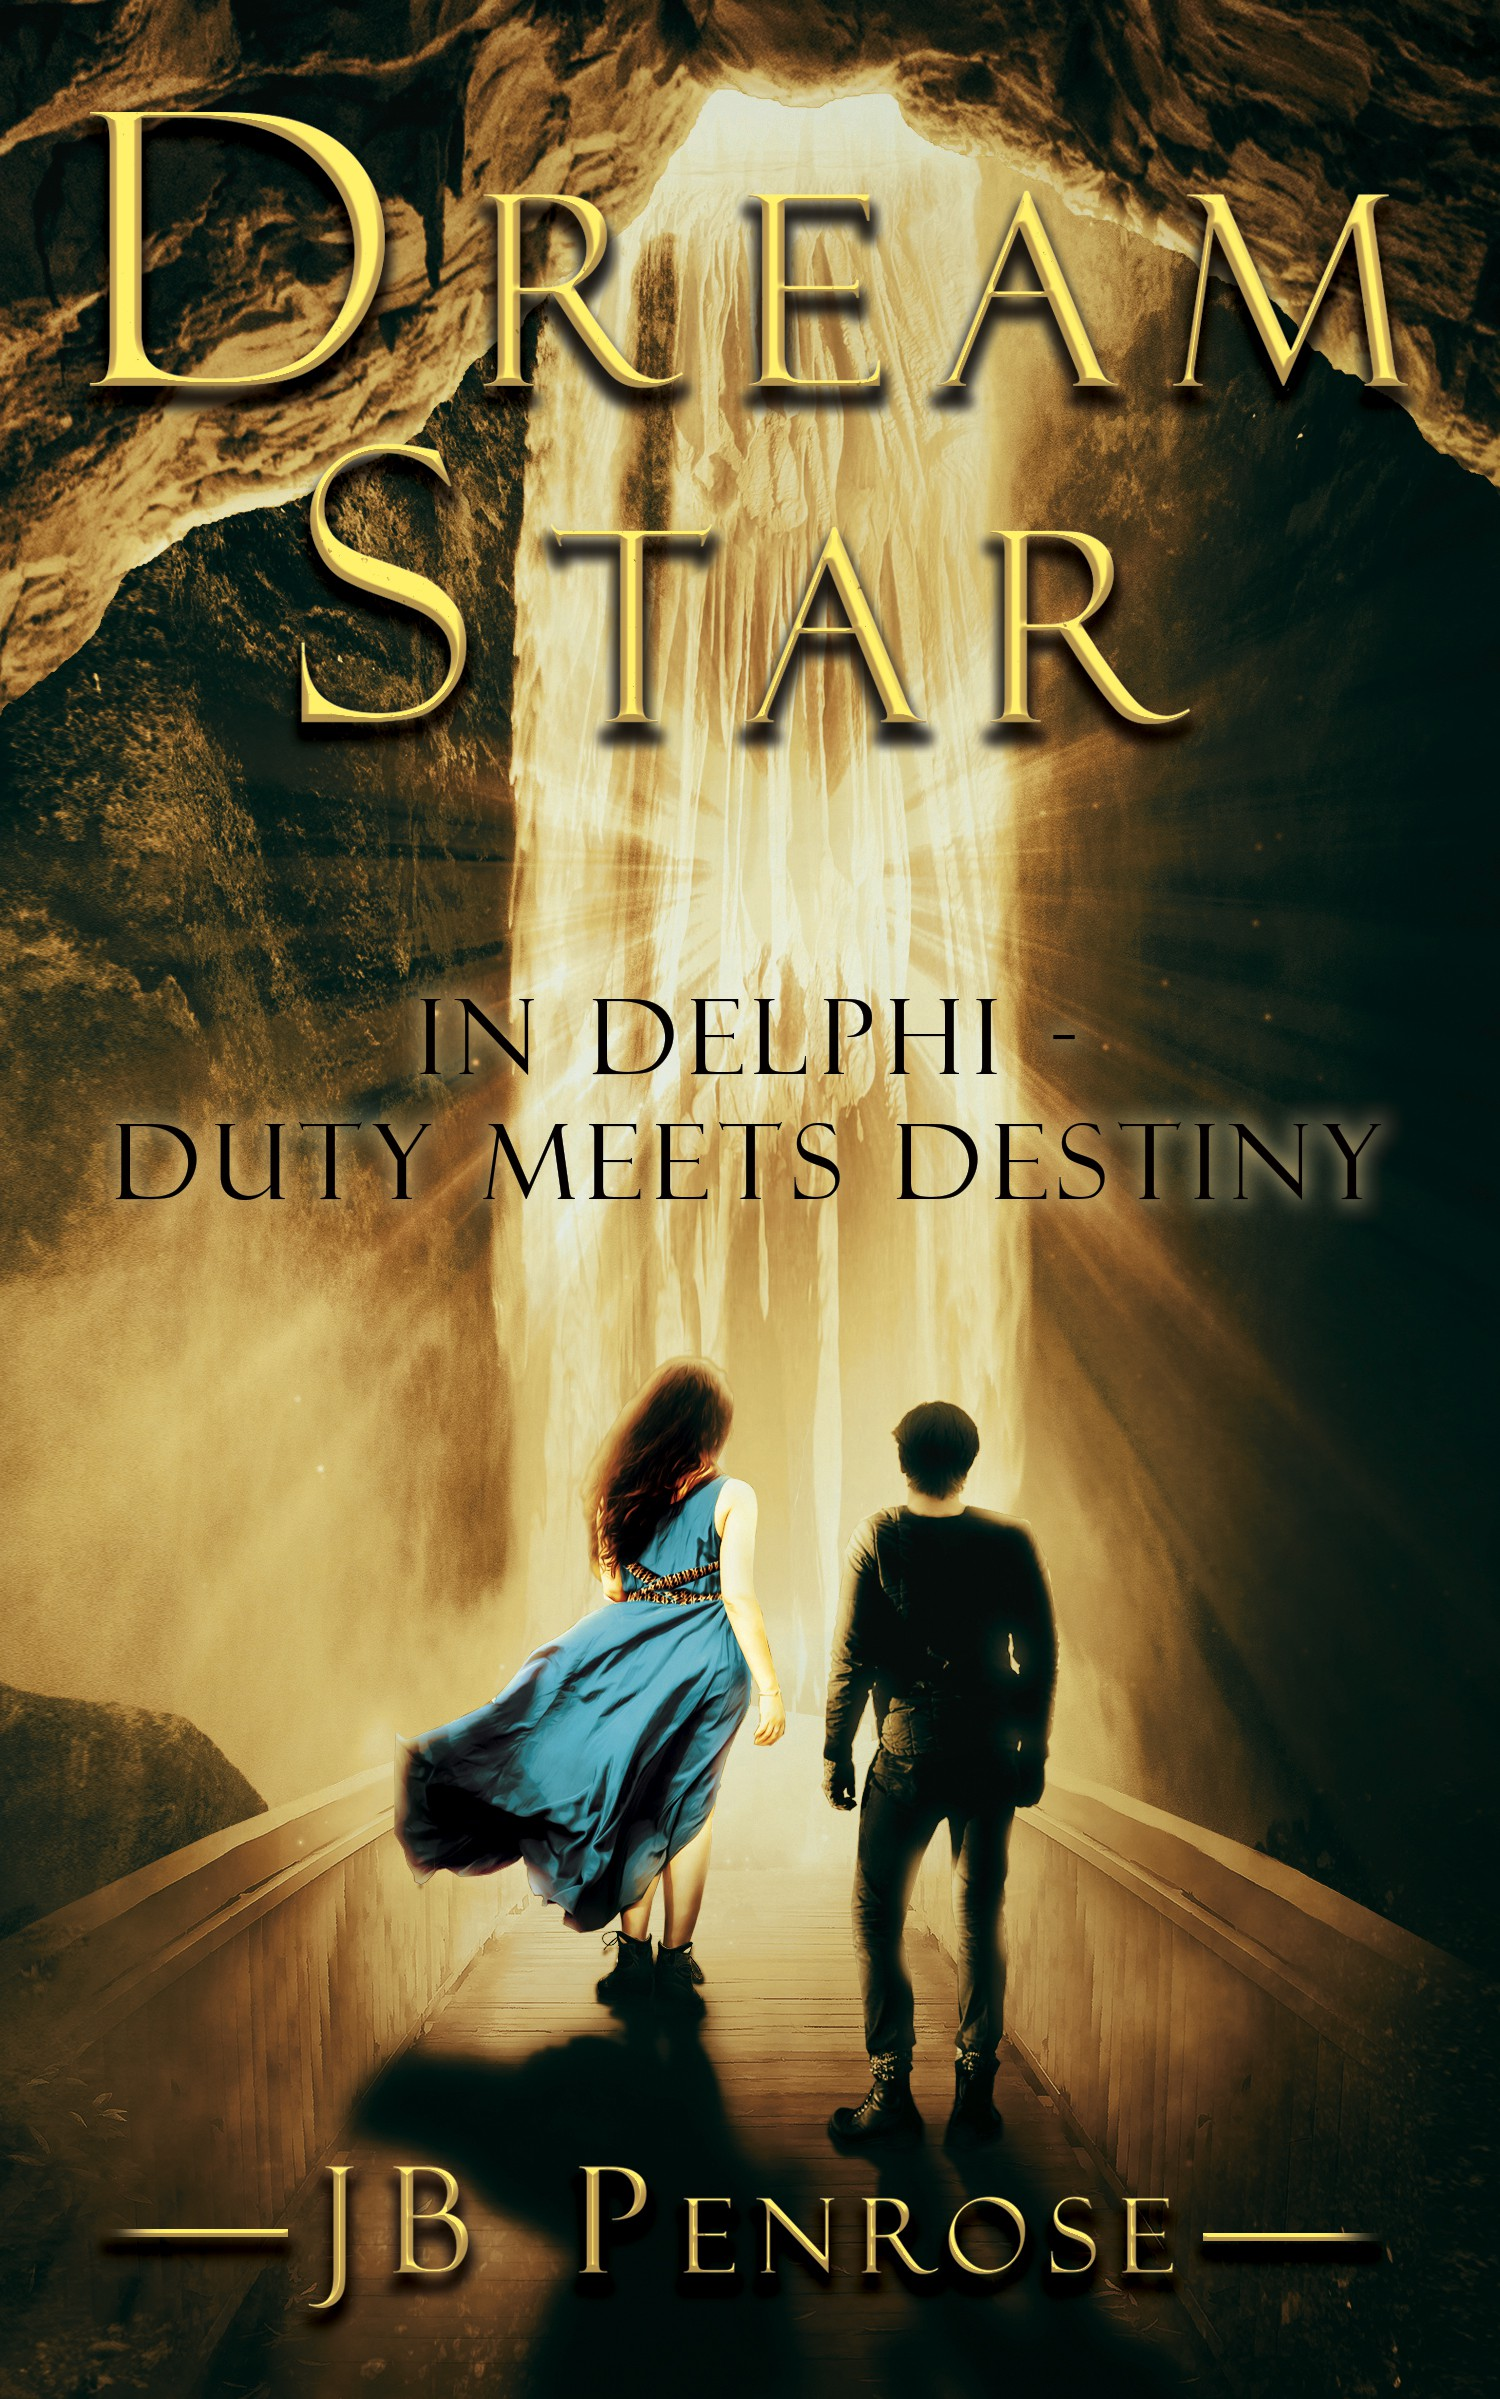 Book Cover exposure - with an author willing & ready to spread props for your work.